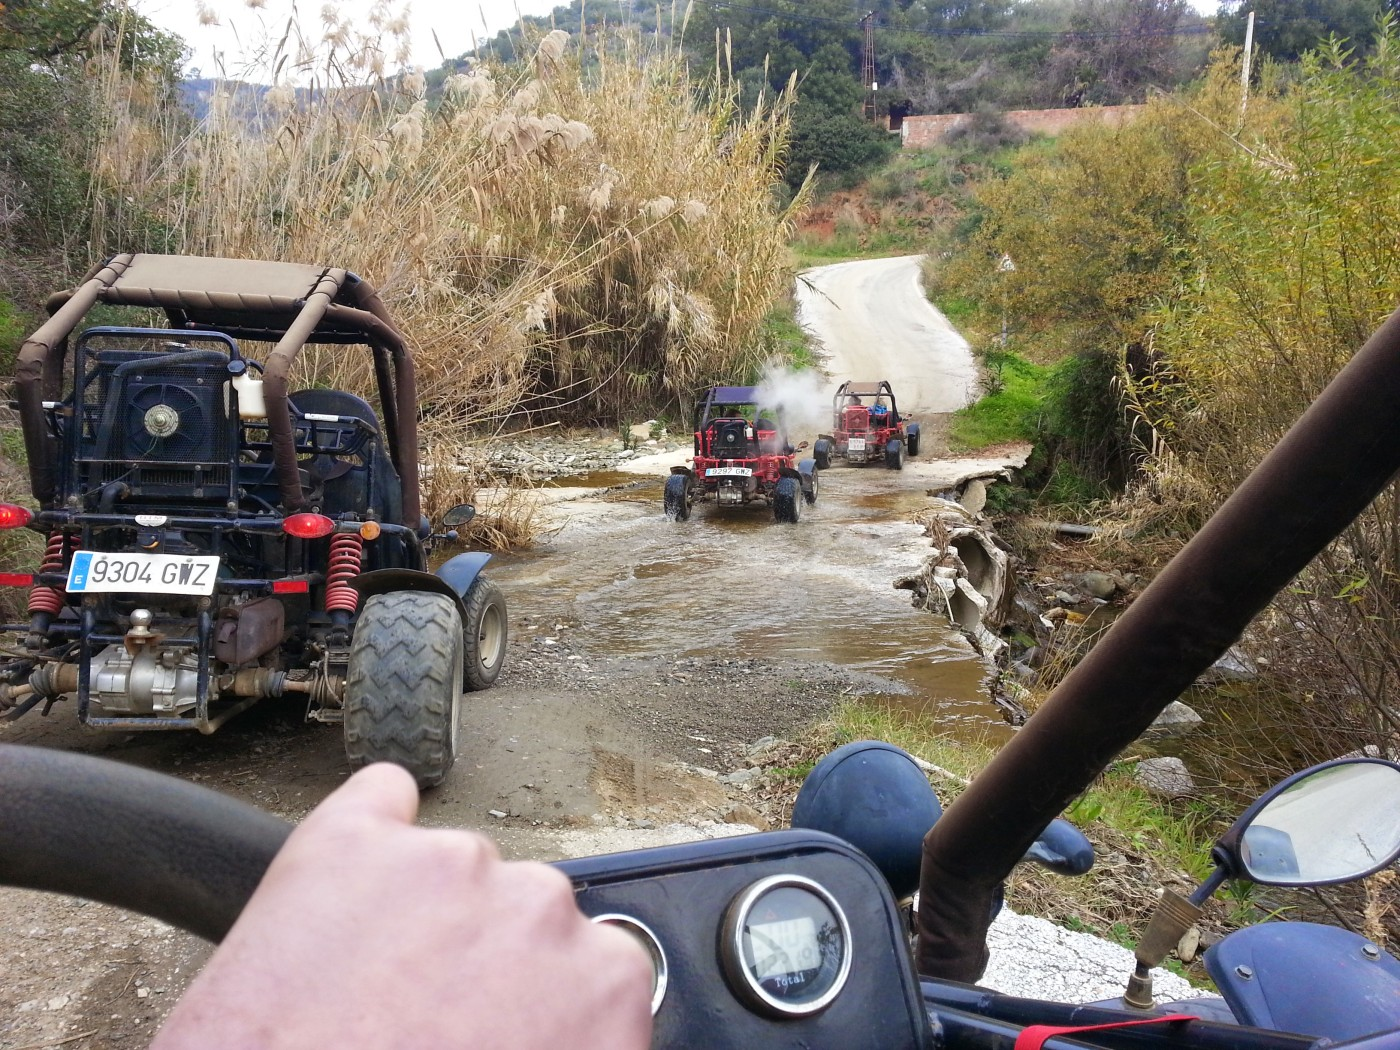 marbella buggy, adventure, costa del sol, andalucia, mountain activitie